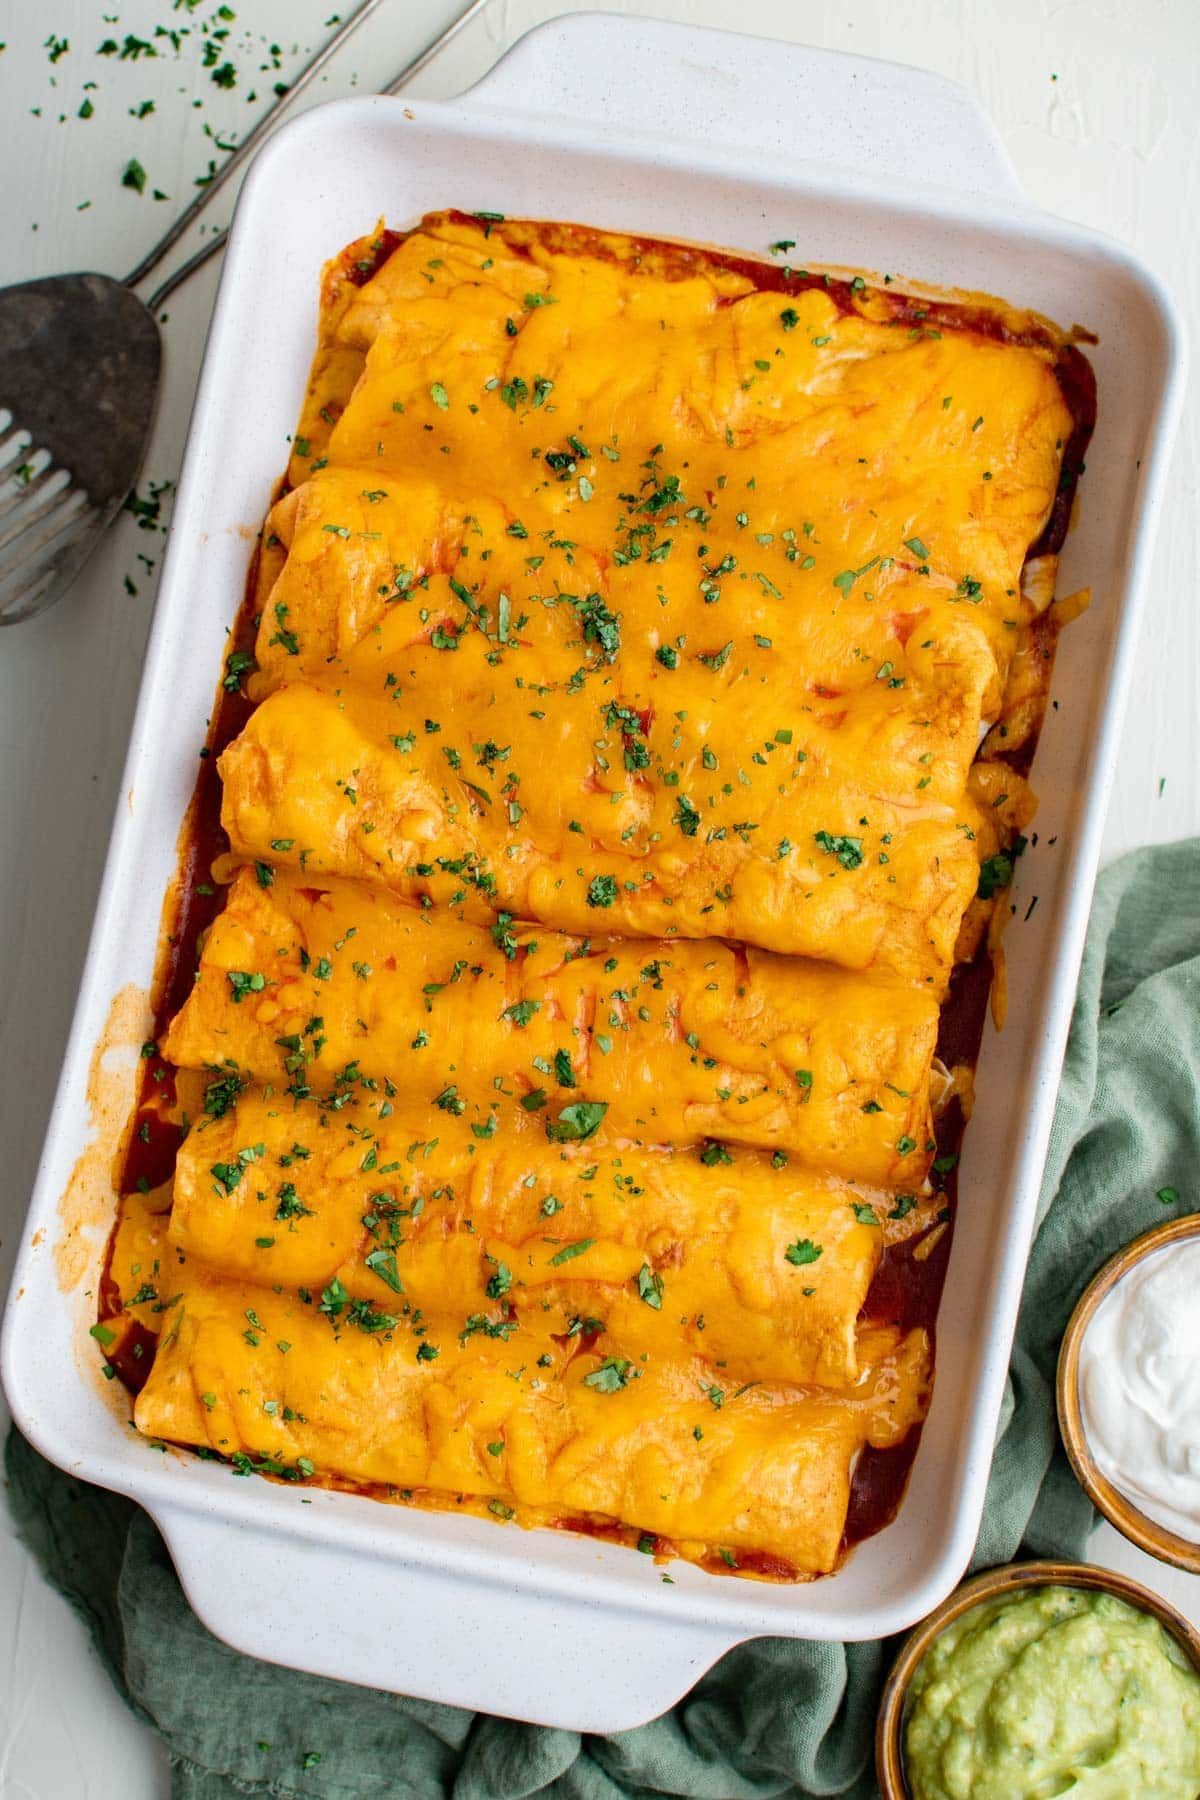 smothered wet burritos arranged in a large baking dish